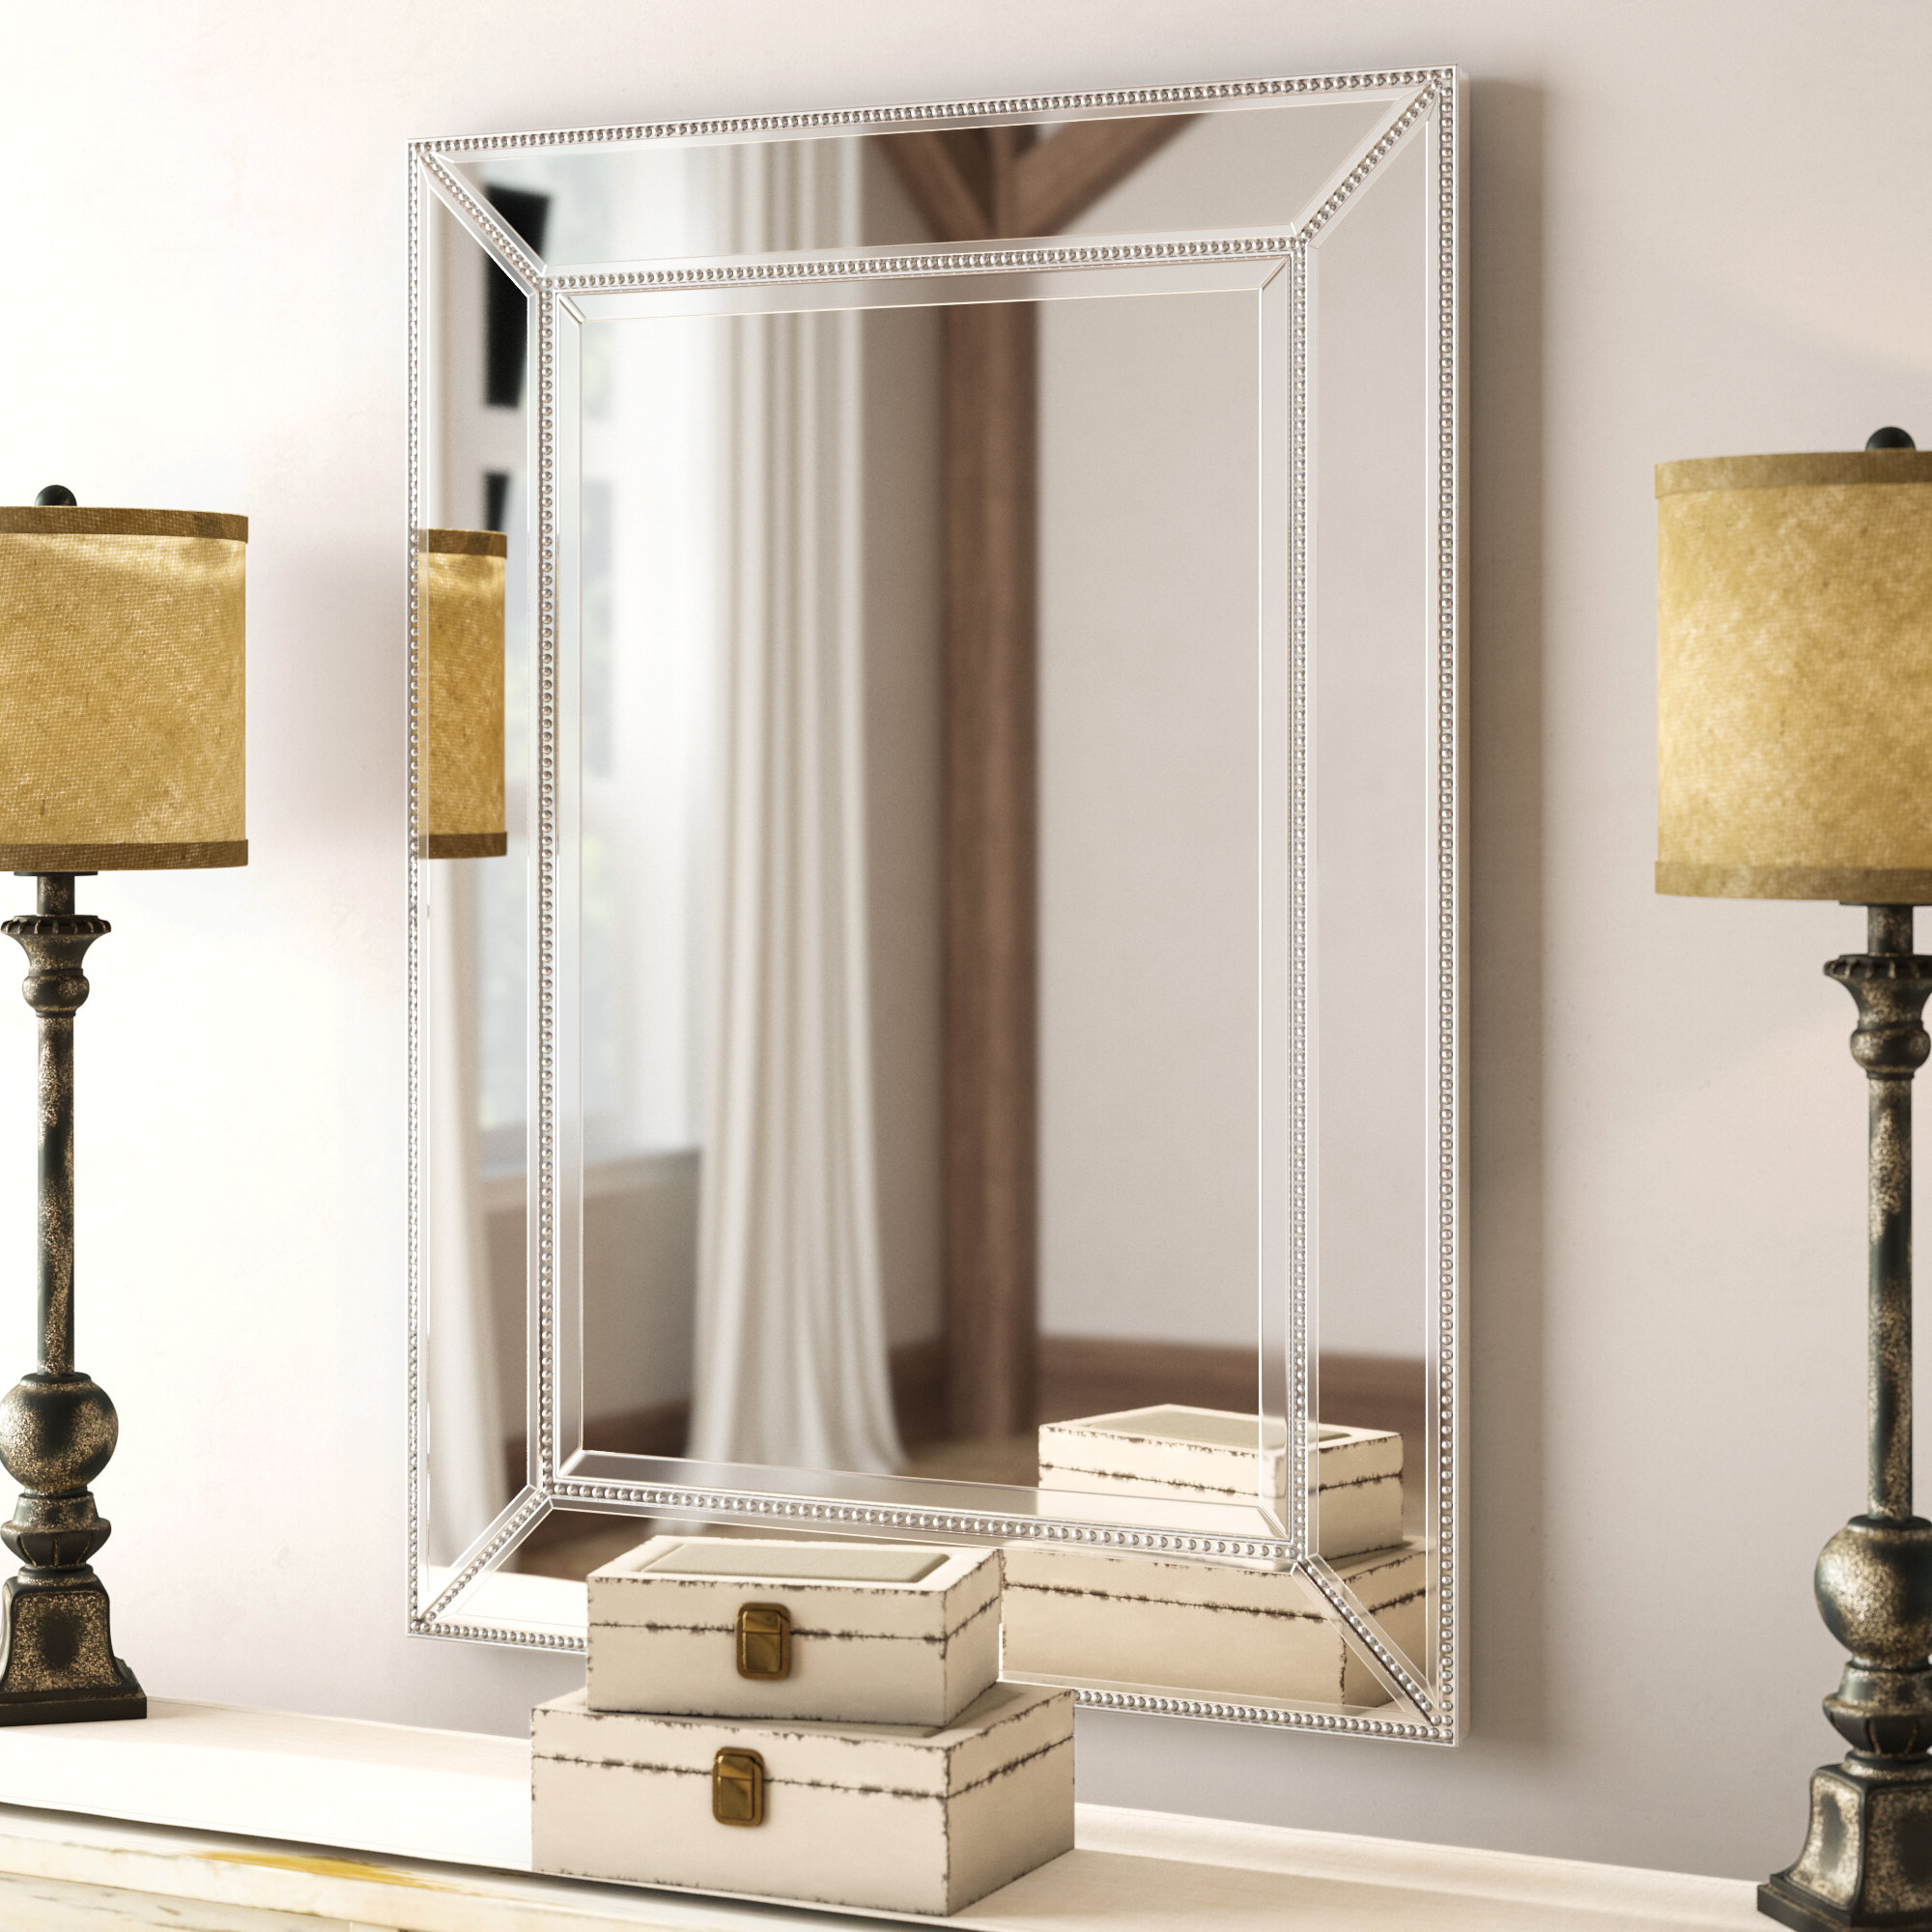 2019 Whimsical Wall Mirrors Within Brayden Beaded Accent Wall Mirror (View 14 of 20)